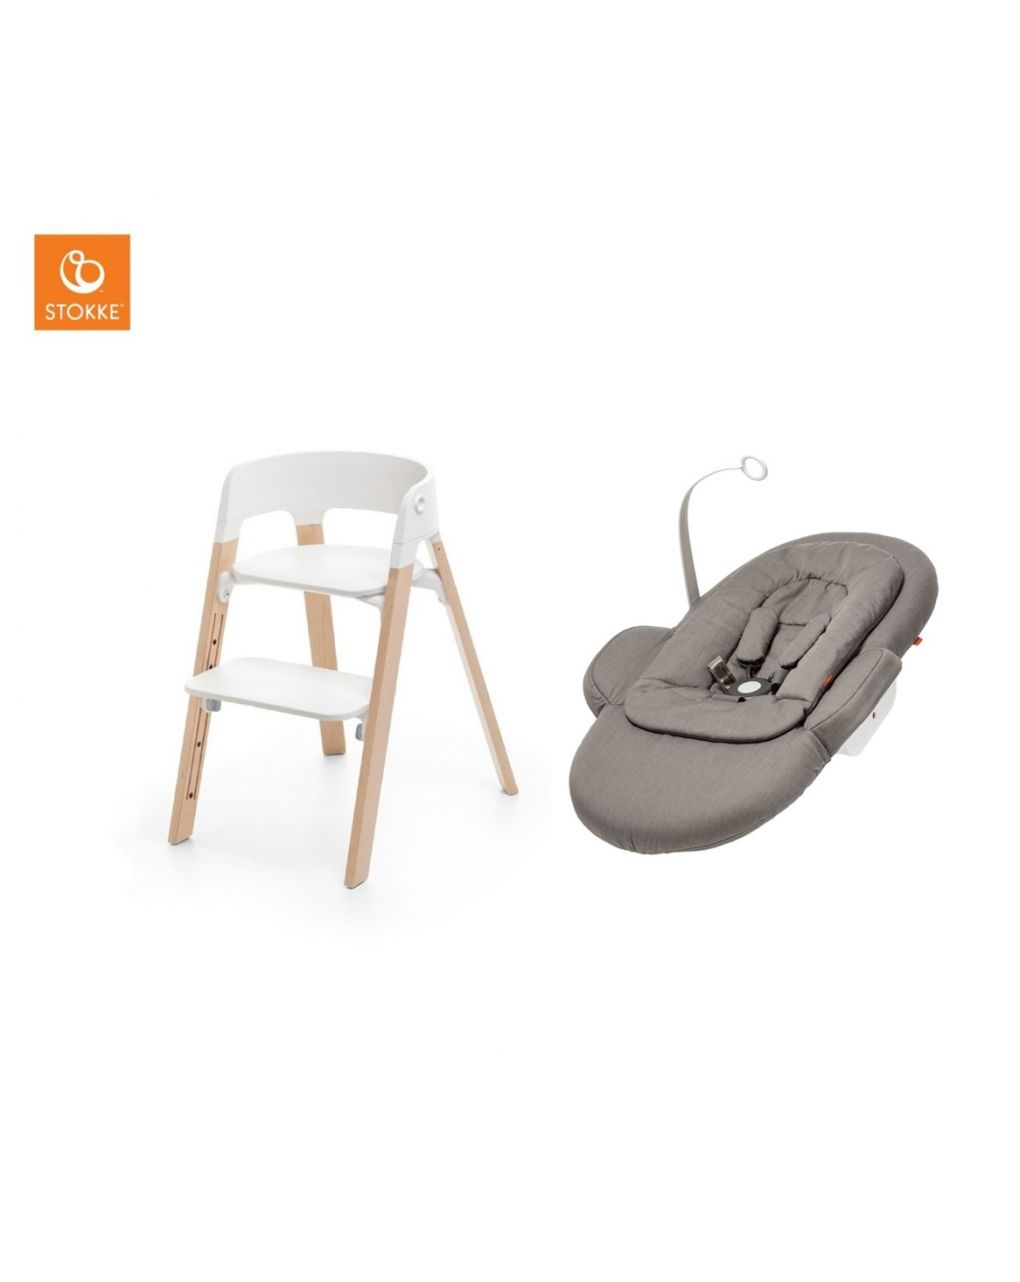 Bundle steps naturale/bianco e newborn set greige - Stokke